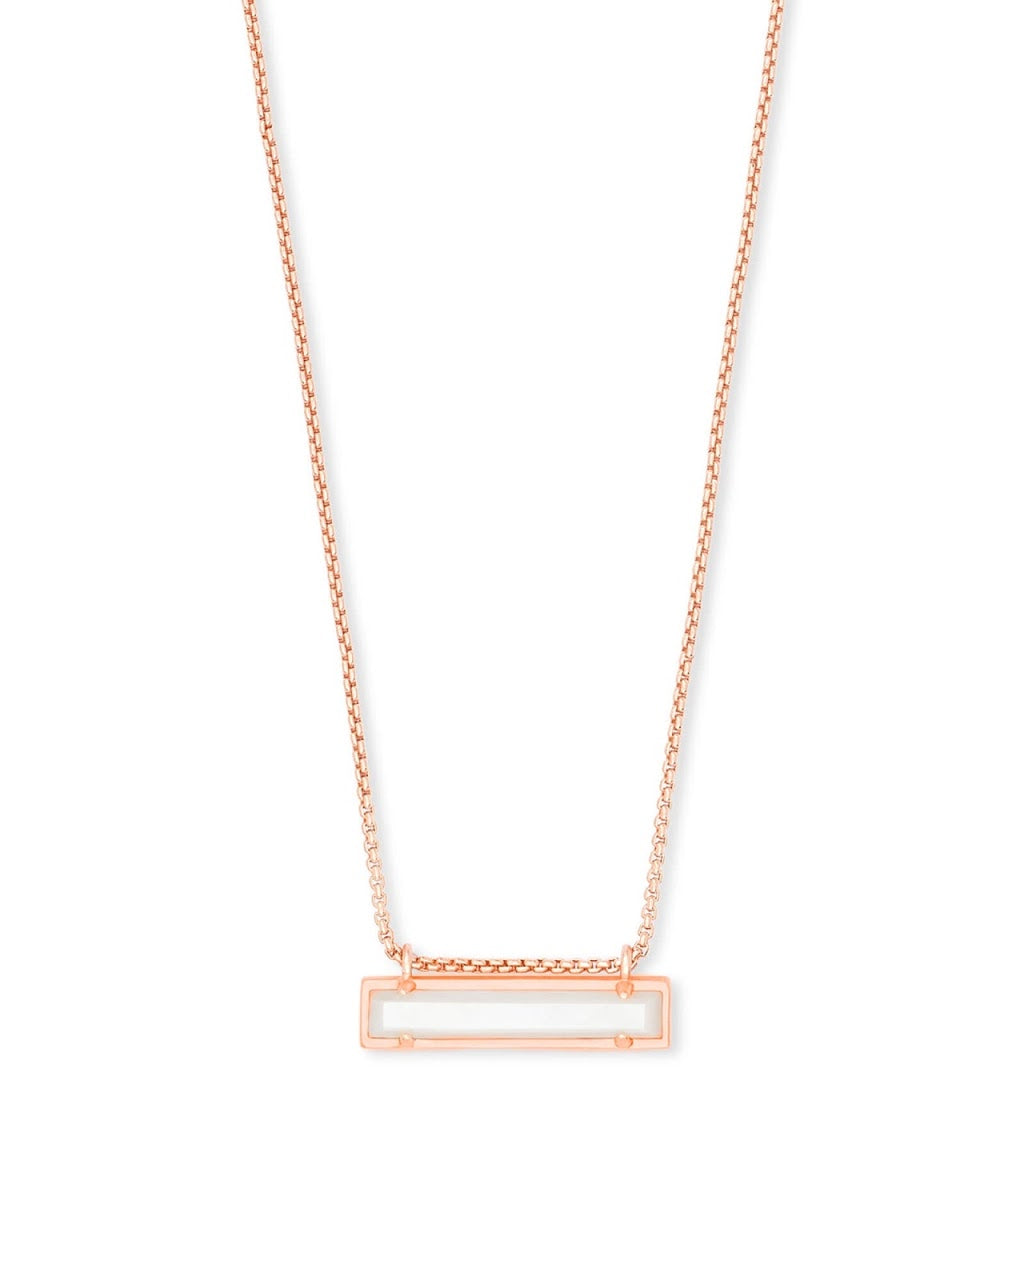 Leanor Rose Gold Bar Necklace-Ivory Mother of Pearl